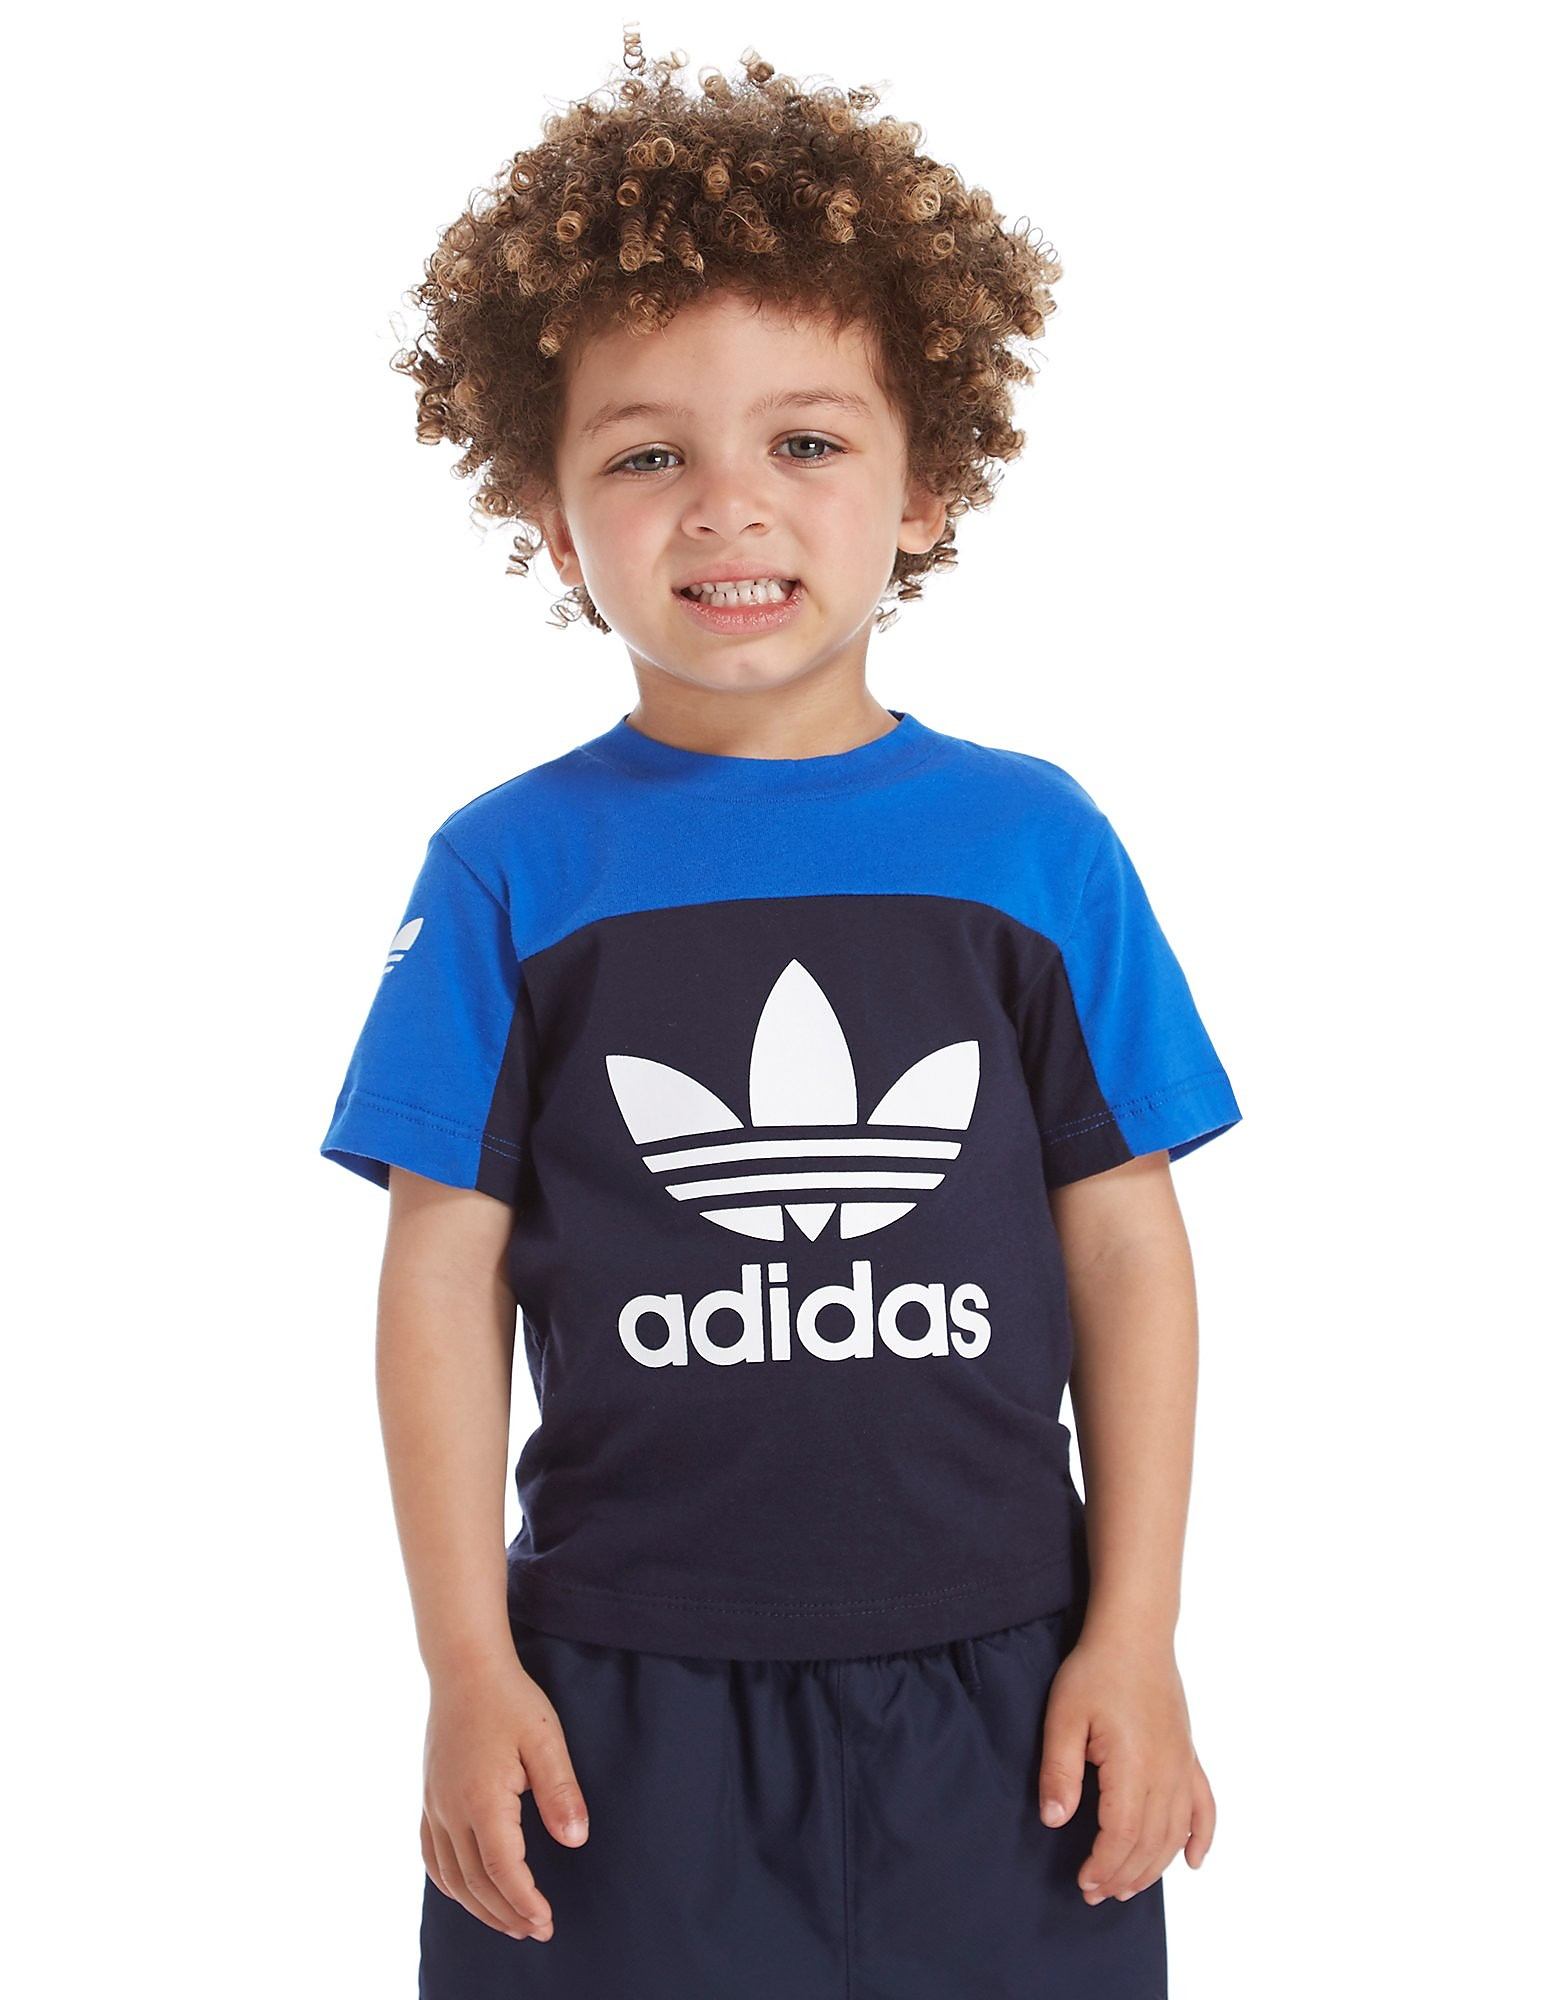 adidas Originals T-shirt Trefoil Colour Block Bébé